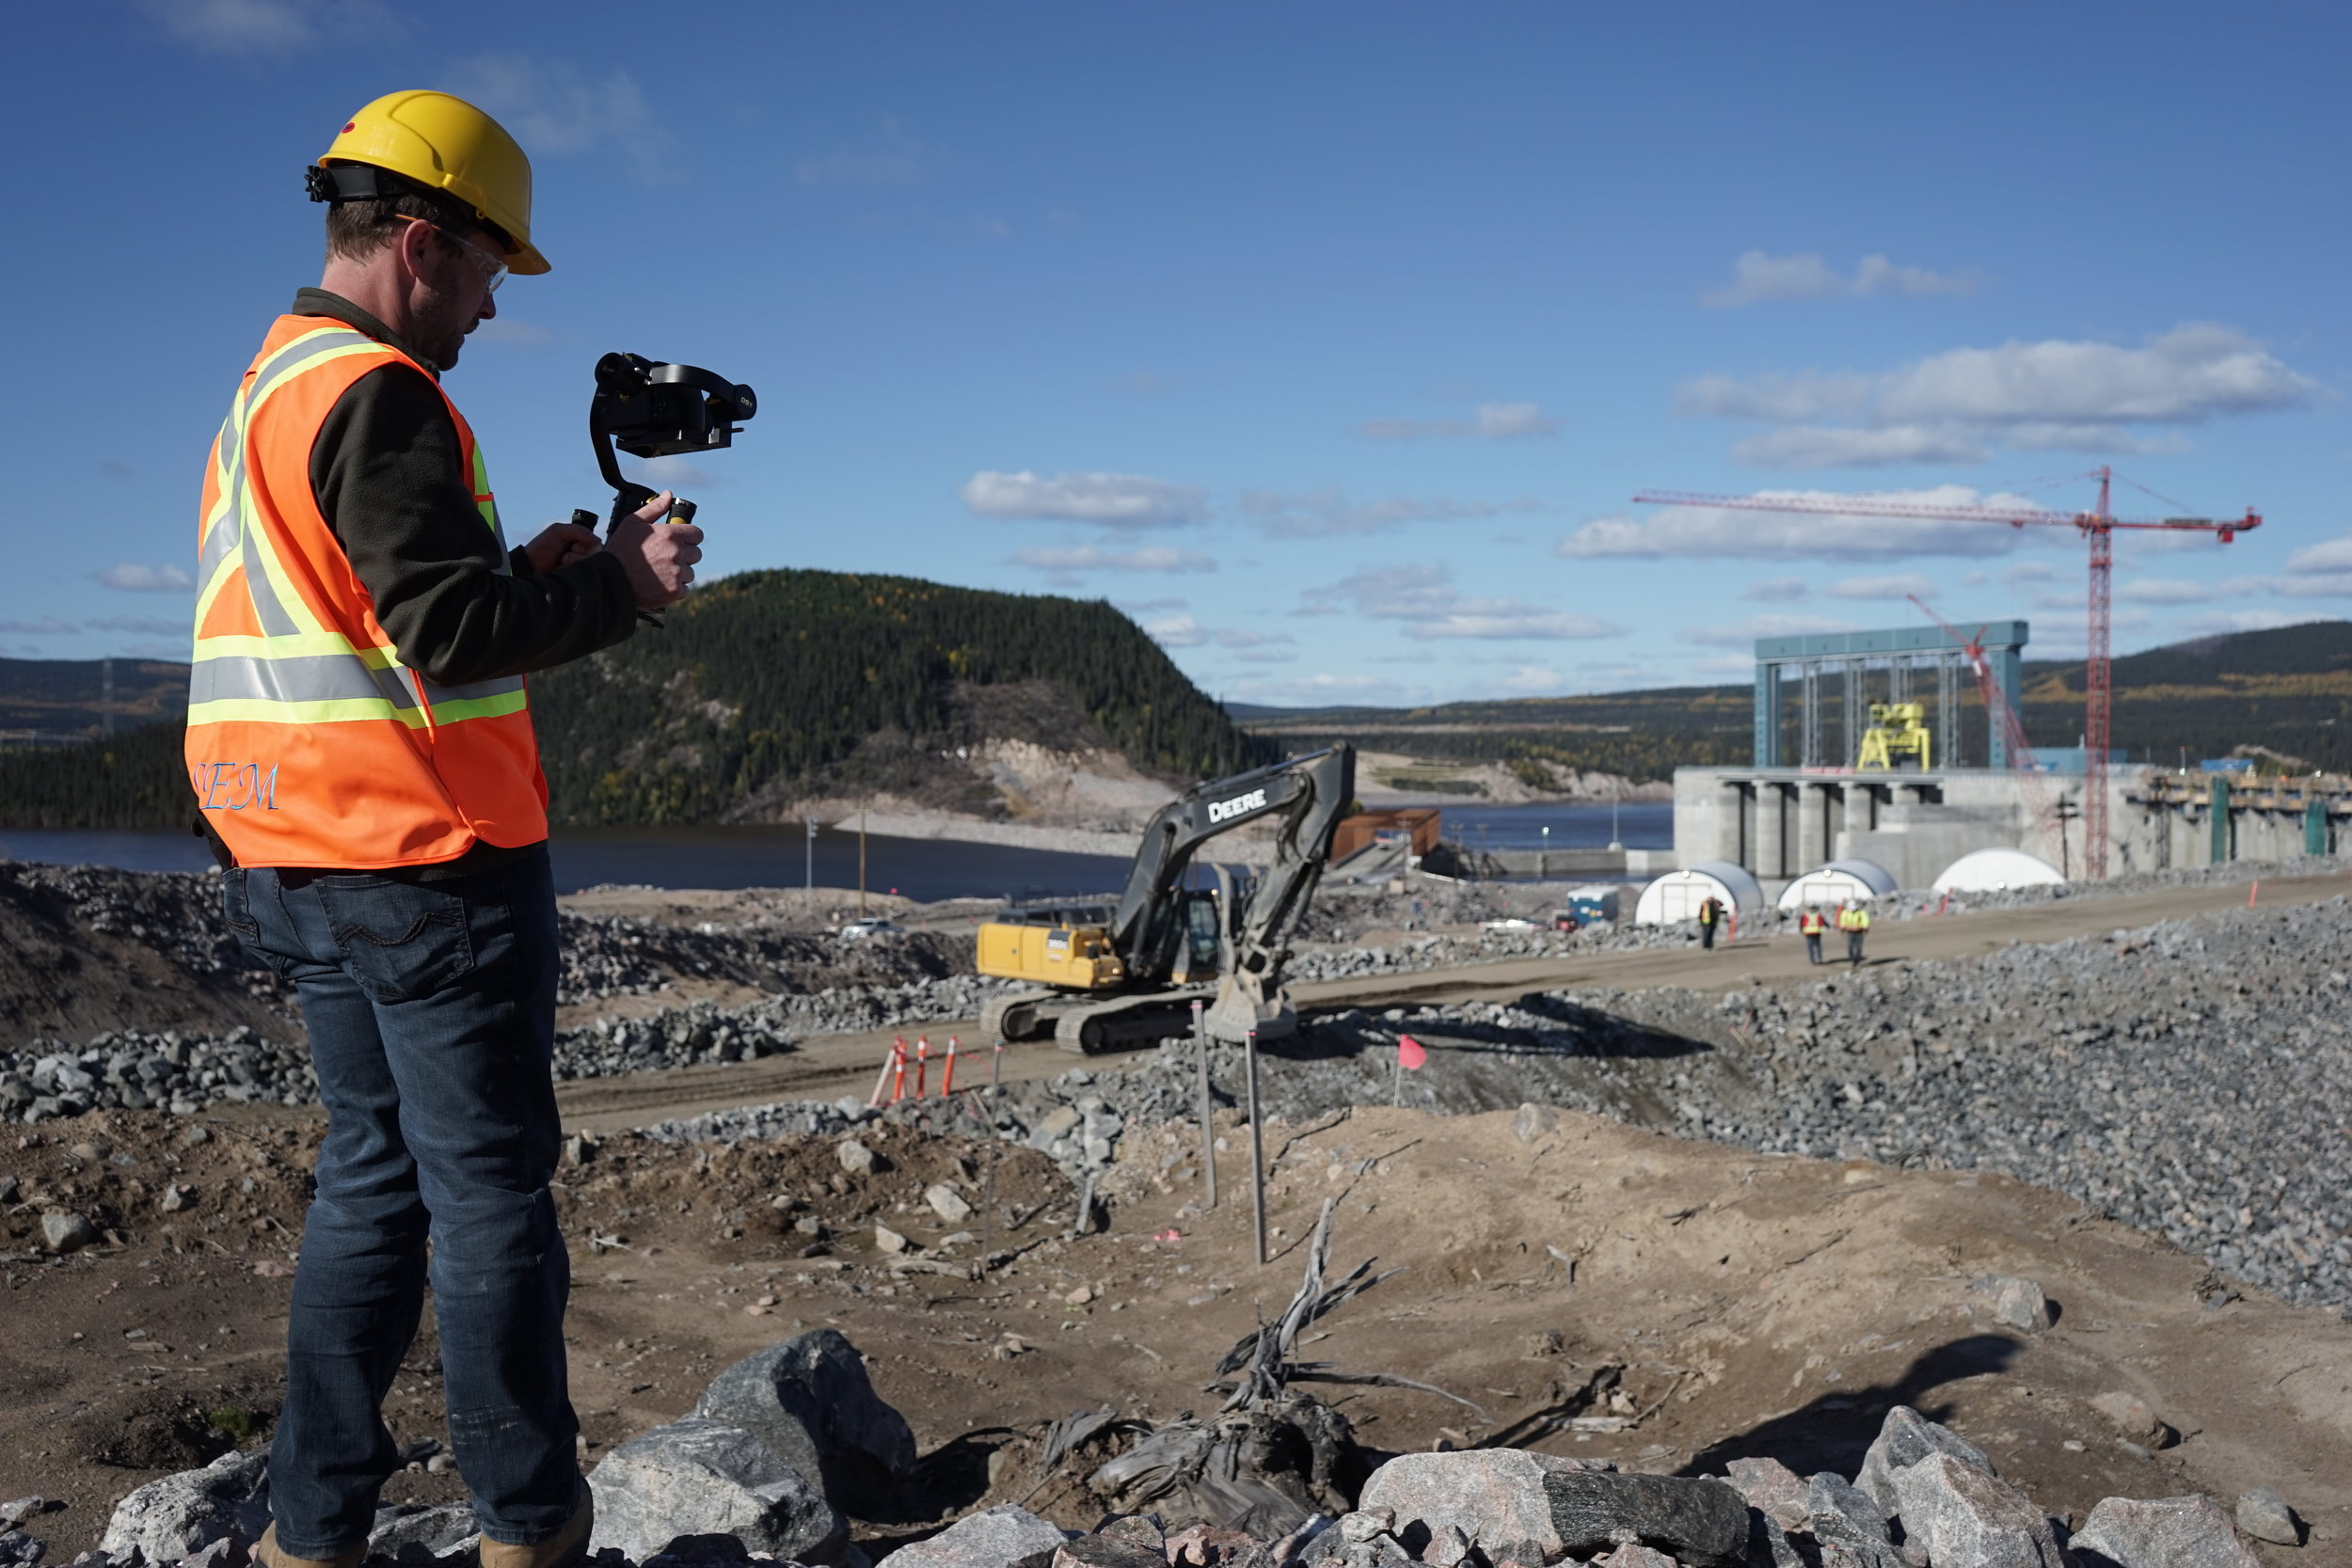 Industrial Media Production St. John's Newfoundland - VR AR 3D and 360